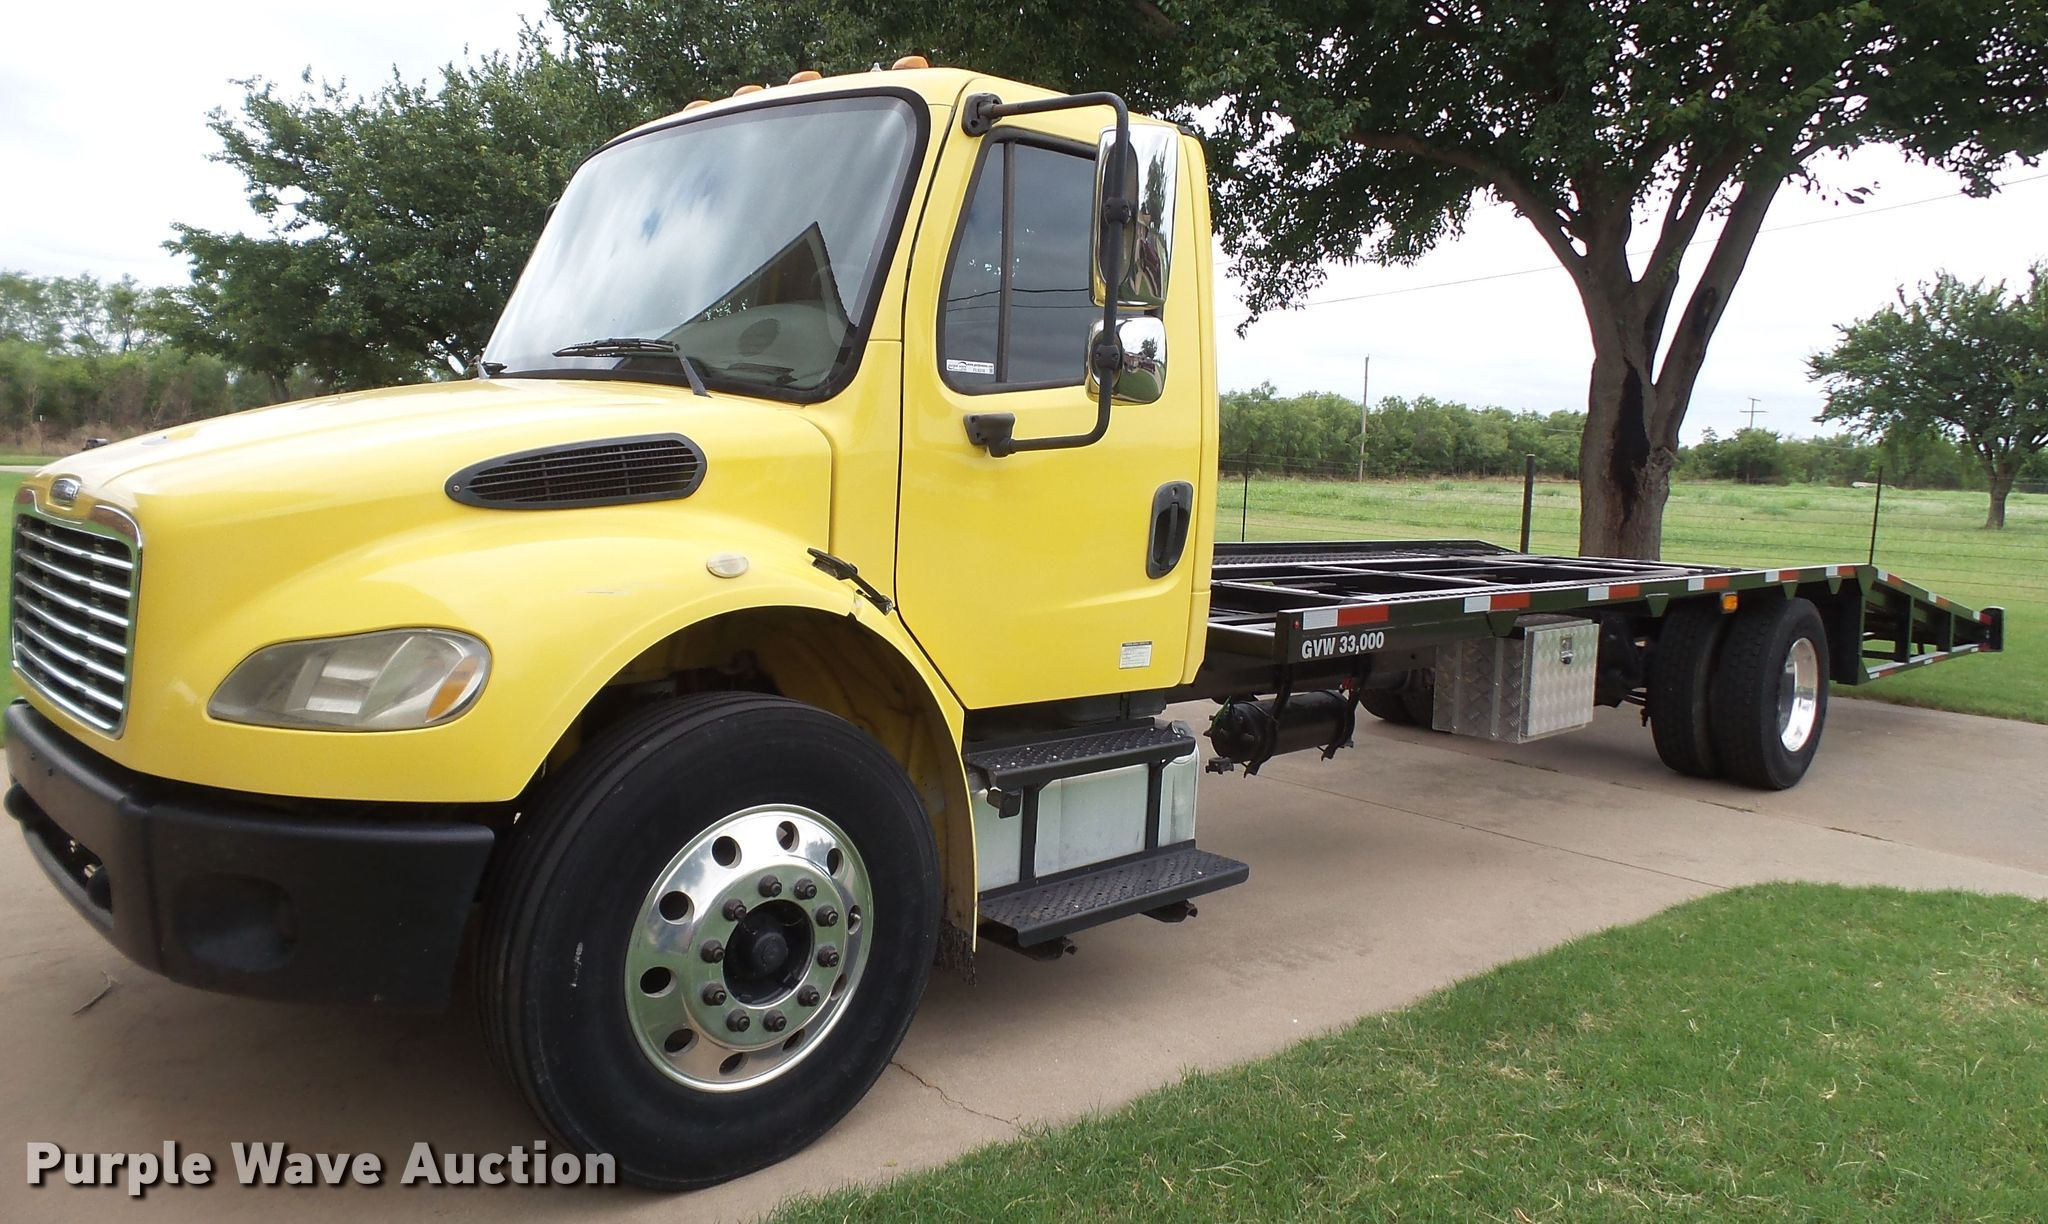 2005 Freightliner Business Class M2 car hauler truck | Item